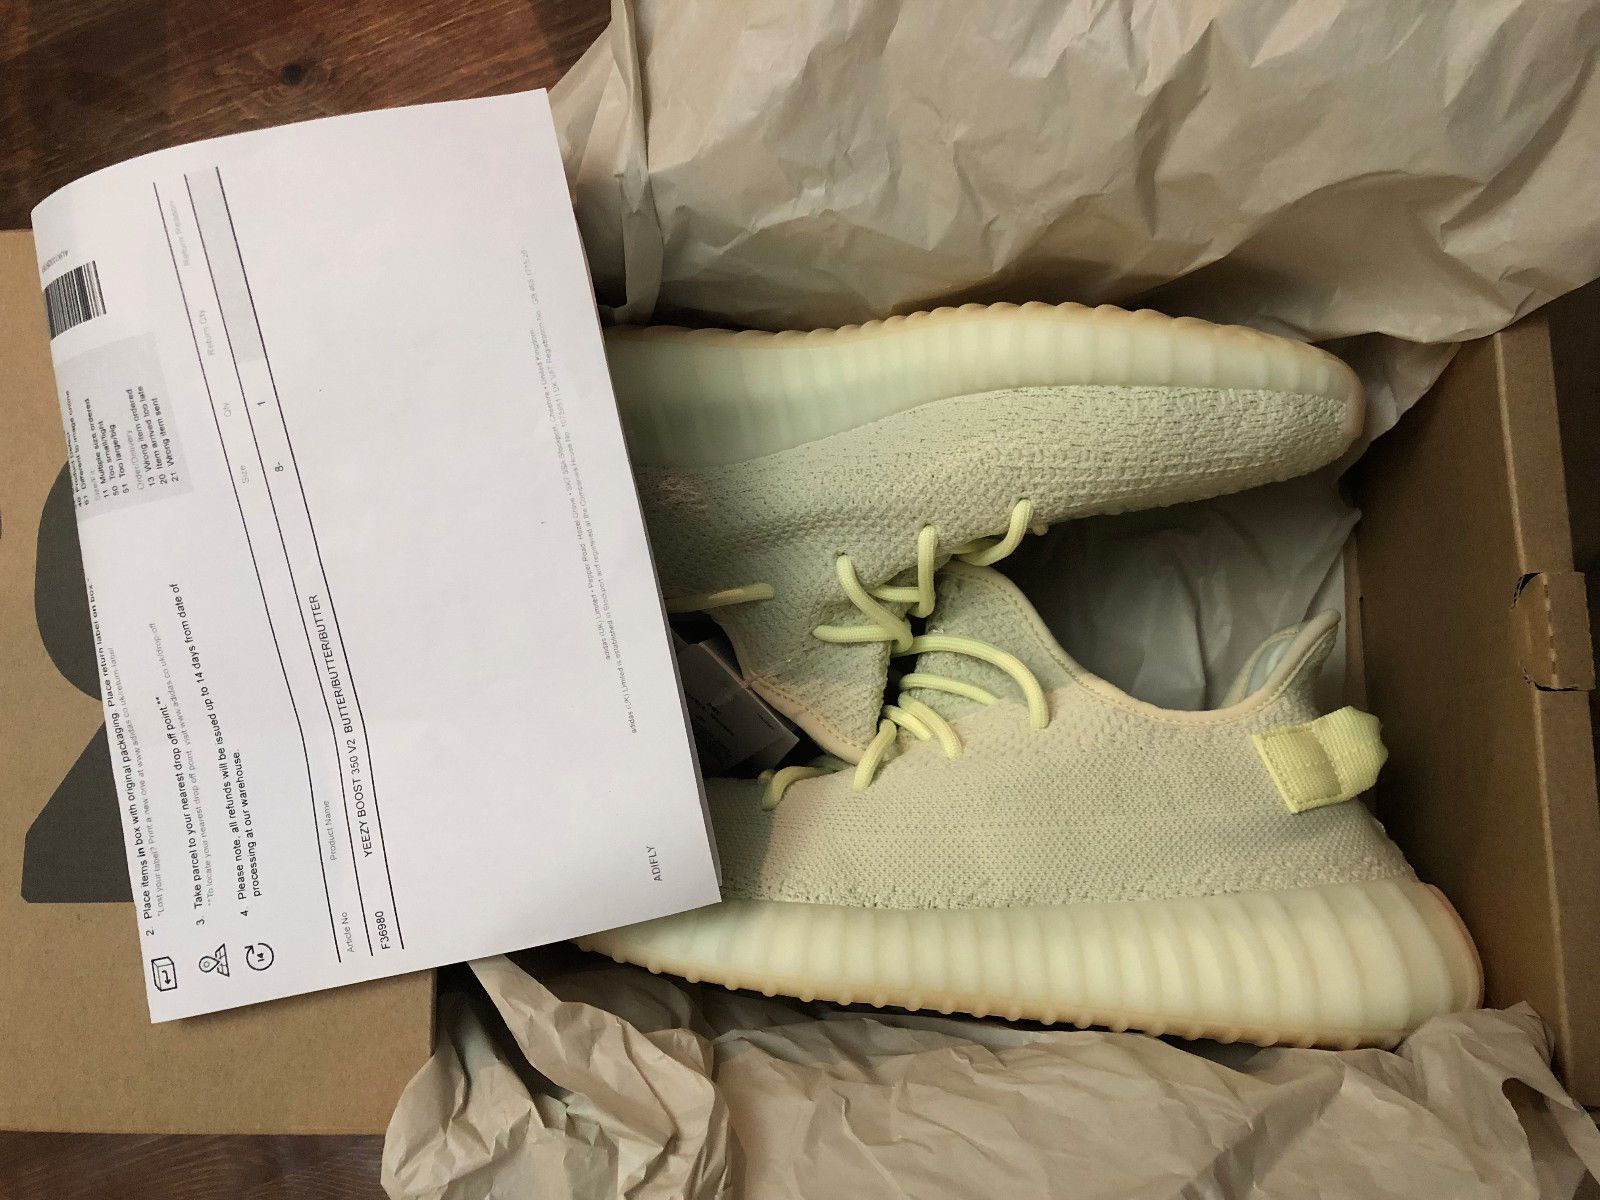 c203388ced5cc ADIDAS YEEZY BOOST 350 v2 BUTTER - UK 8.5 US9 42.5 F36980